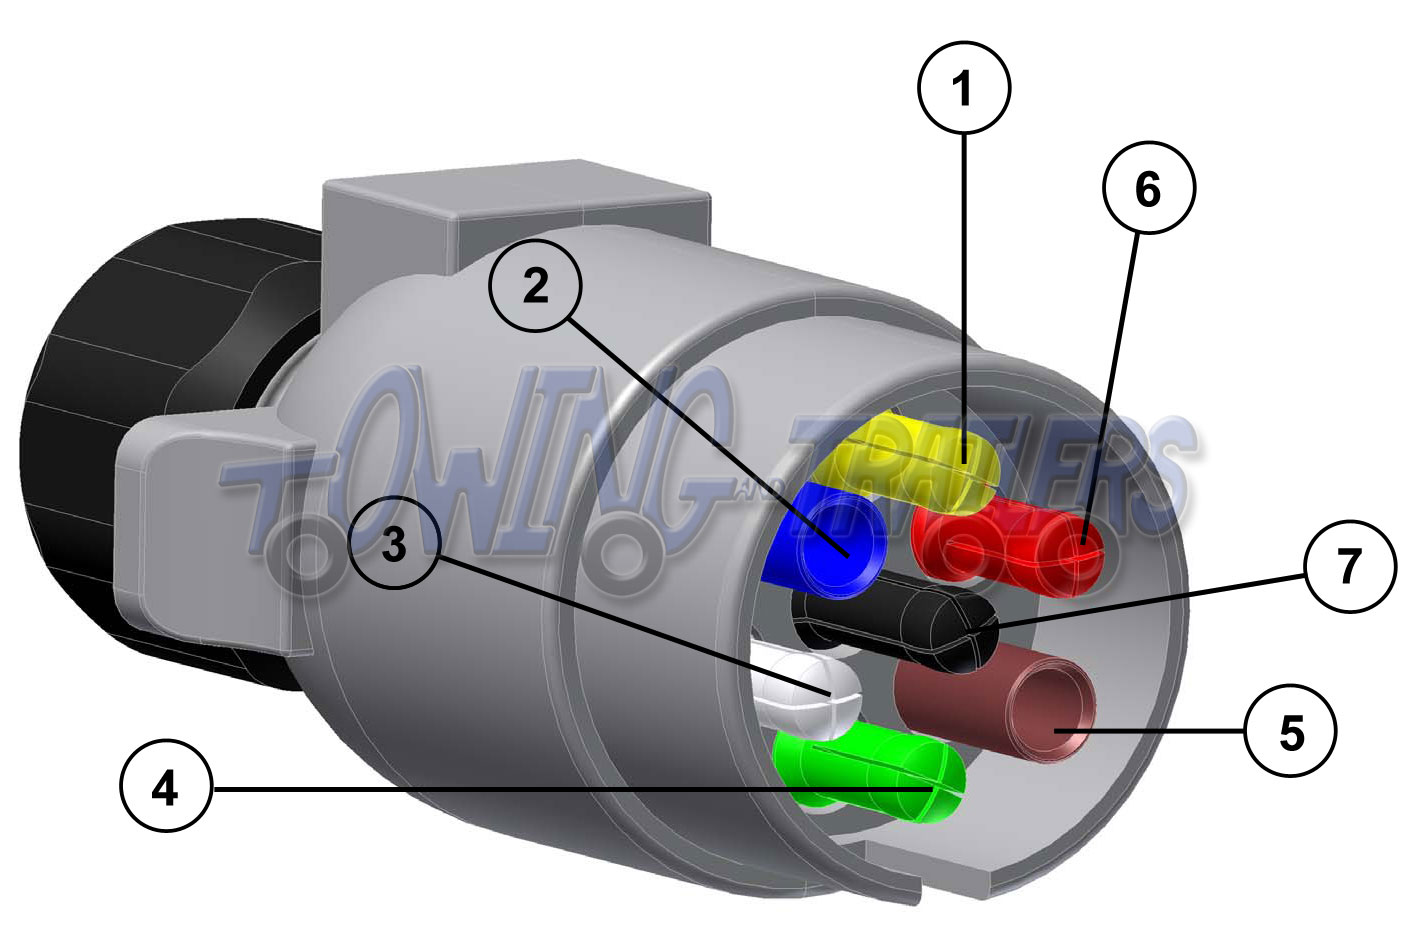 13 pin towbar wiring diagram uk honeywell tje pressure transducer trailer electrics towing and trailers ltd